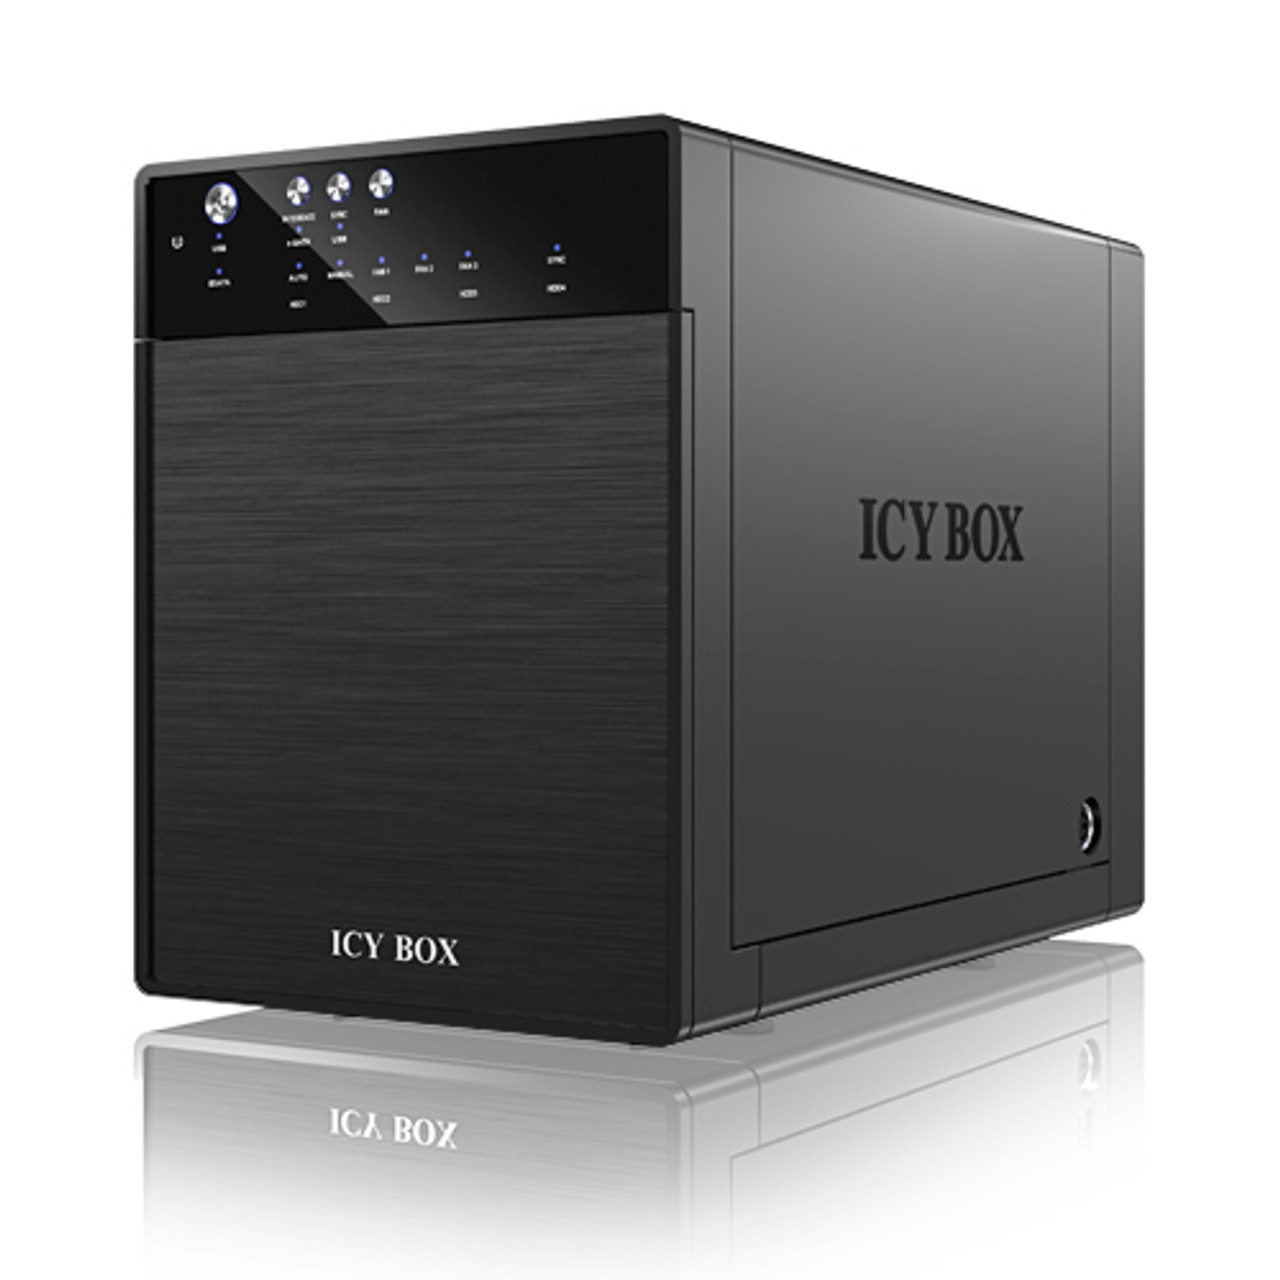 Product image for ICY BOX IB-3640SU3 External 4-bay JBOD system for 3.5 Inch SATA HDDs | CX Computer Superstore